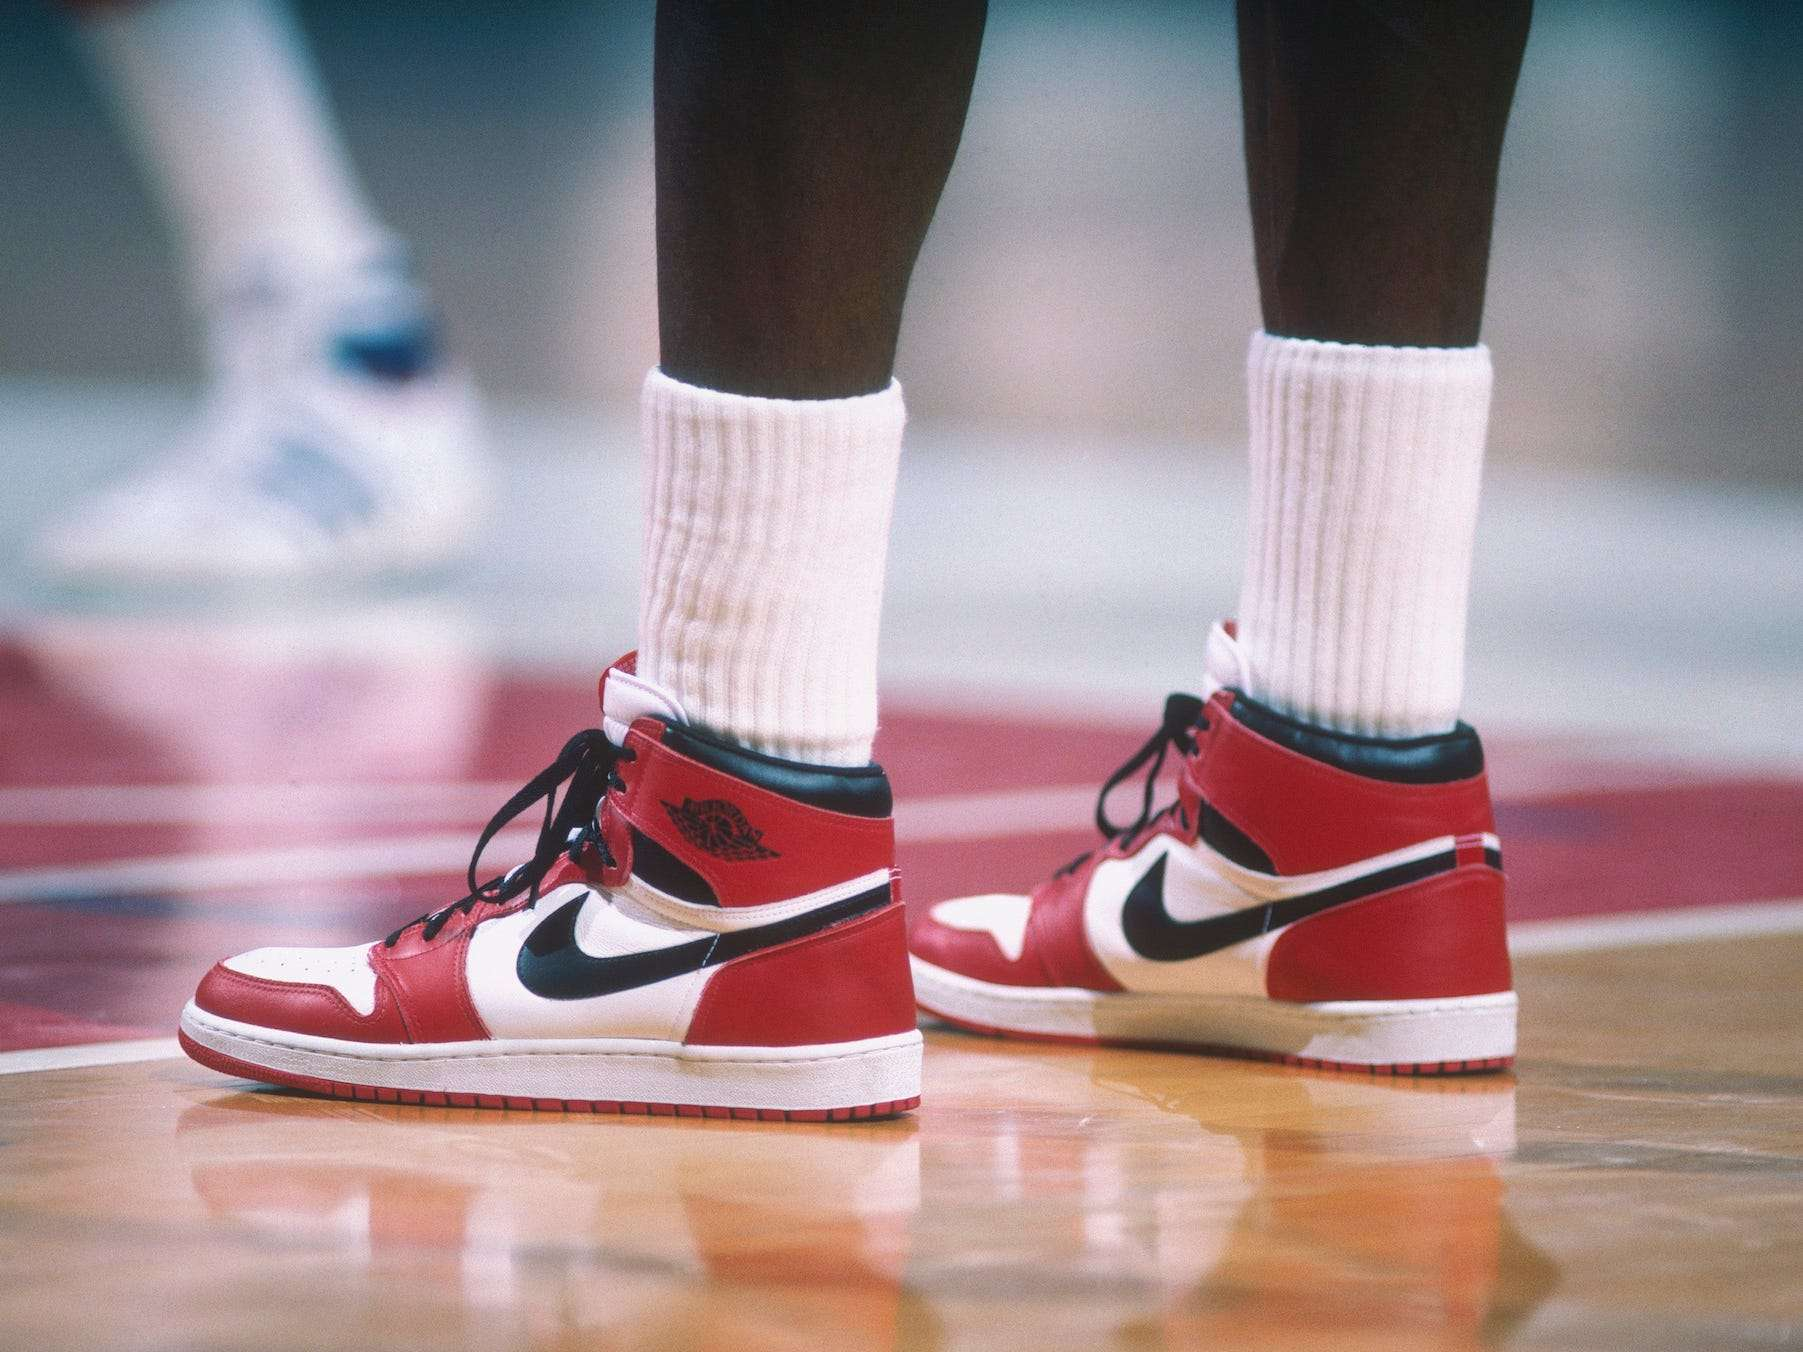 Realista novato secundario  From the Chicago 1s to the Bred 11s, these are the best-selling Air Jordan  sneakers on eBay in the last 15 years | BusinessInsider India